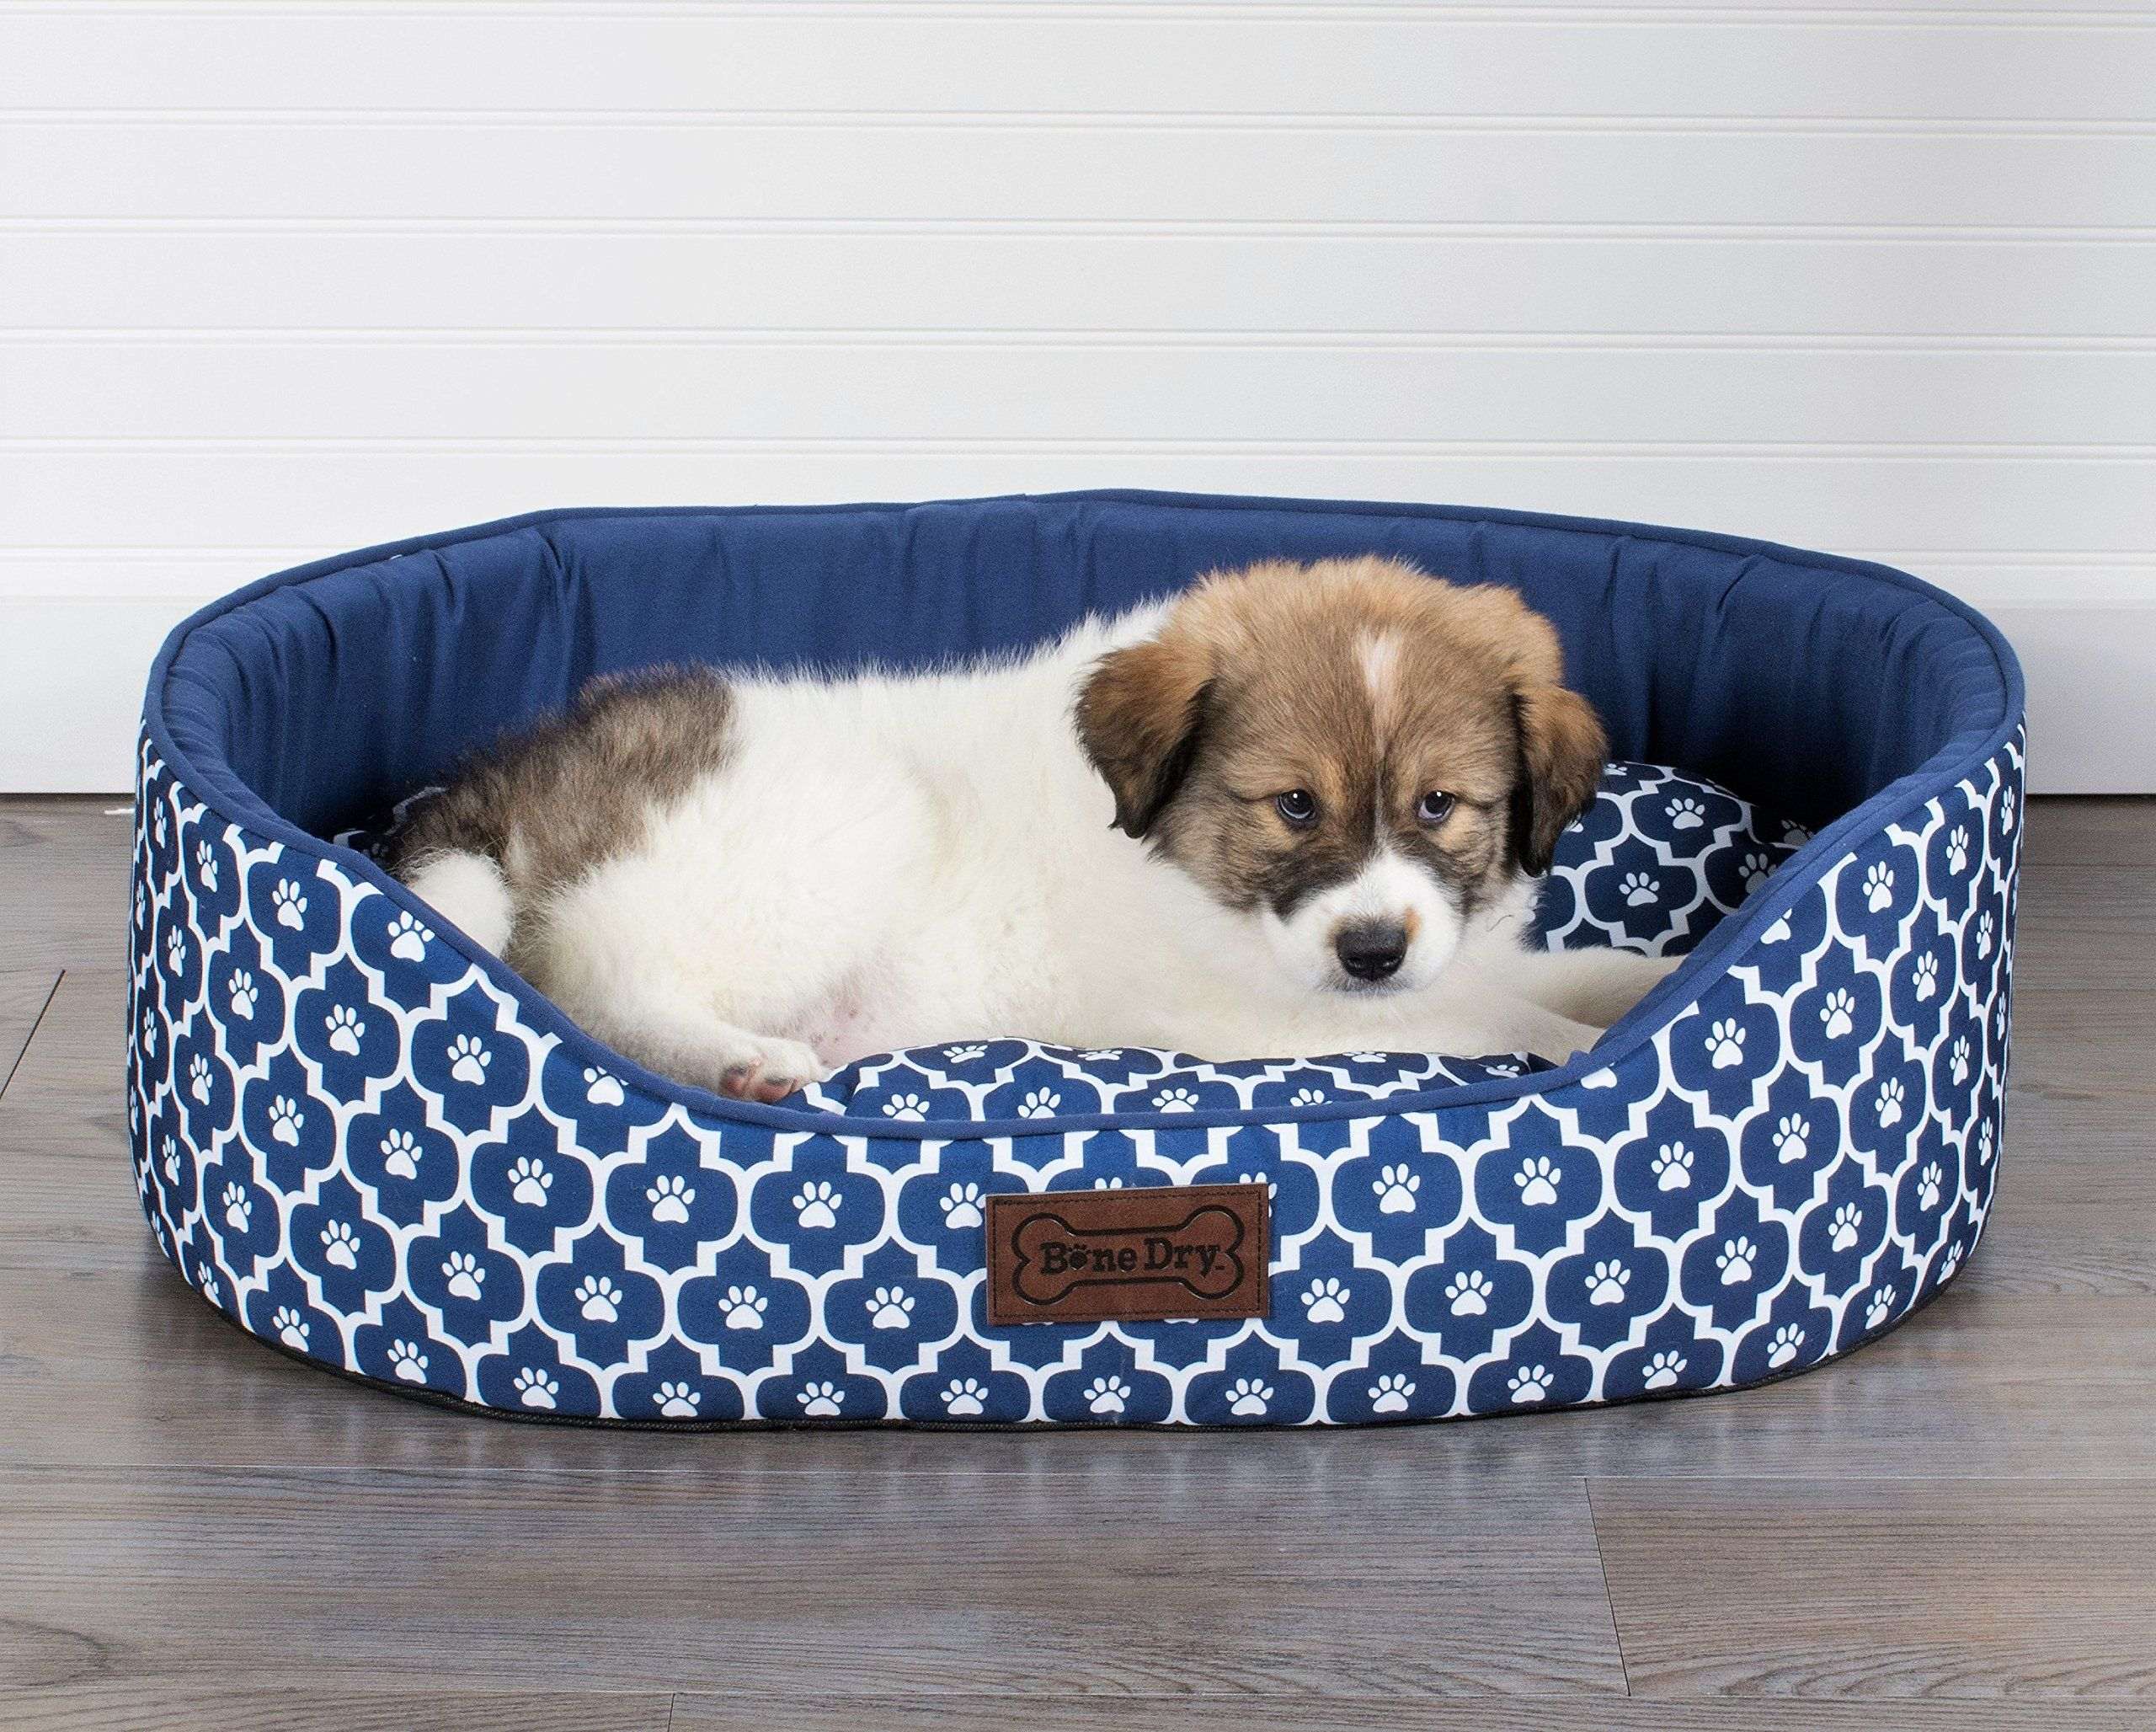 Dii Bone Dry Lattice Pet Bed 27x36x10 Modern And Fashionable Large Oval Bed For Dogs Or Catsnavy For More Information Visit Image Cat Bed Dog Mat Pet Bed